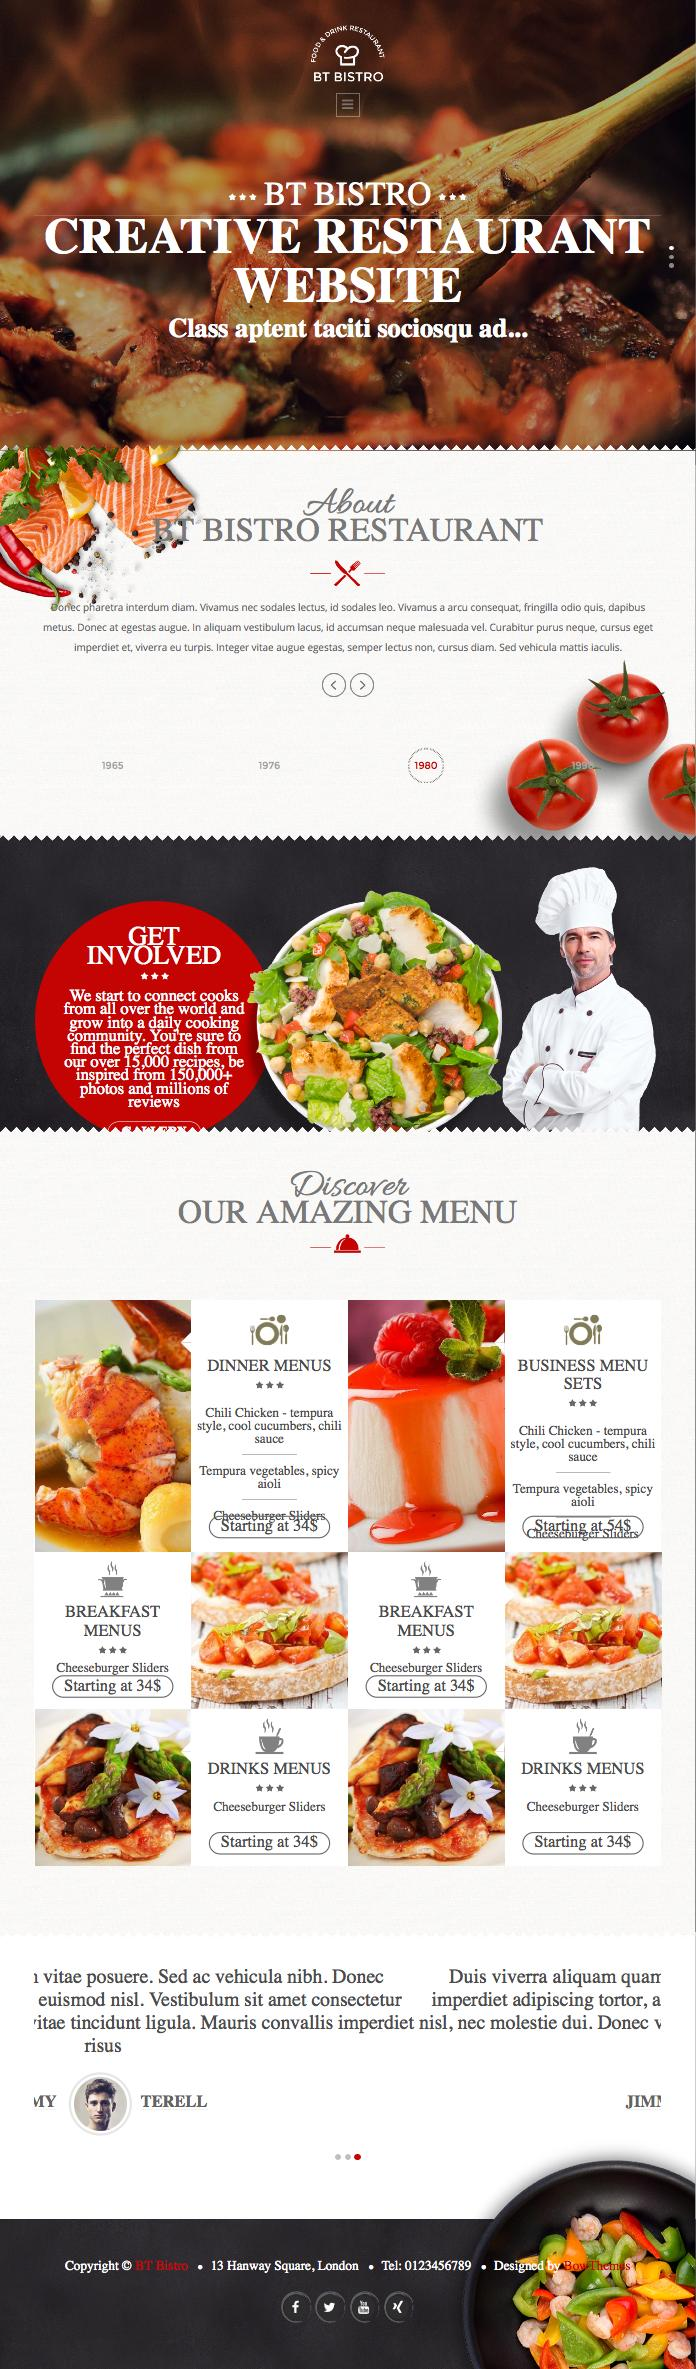 BT Bistro Joomla Restaurant & Food Template